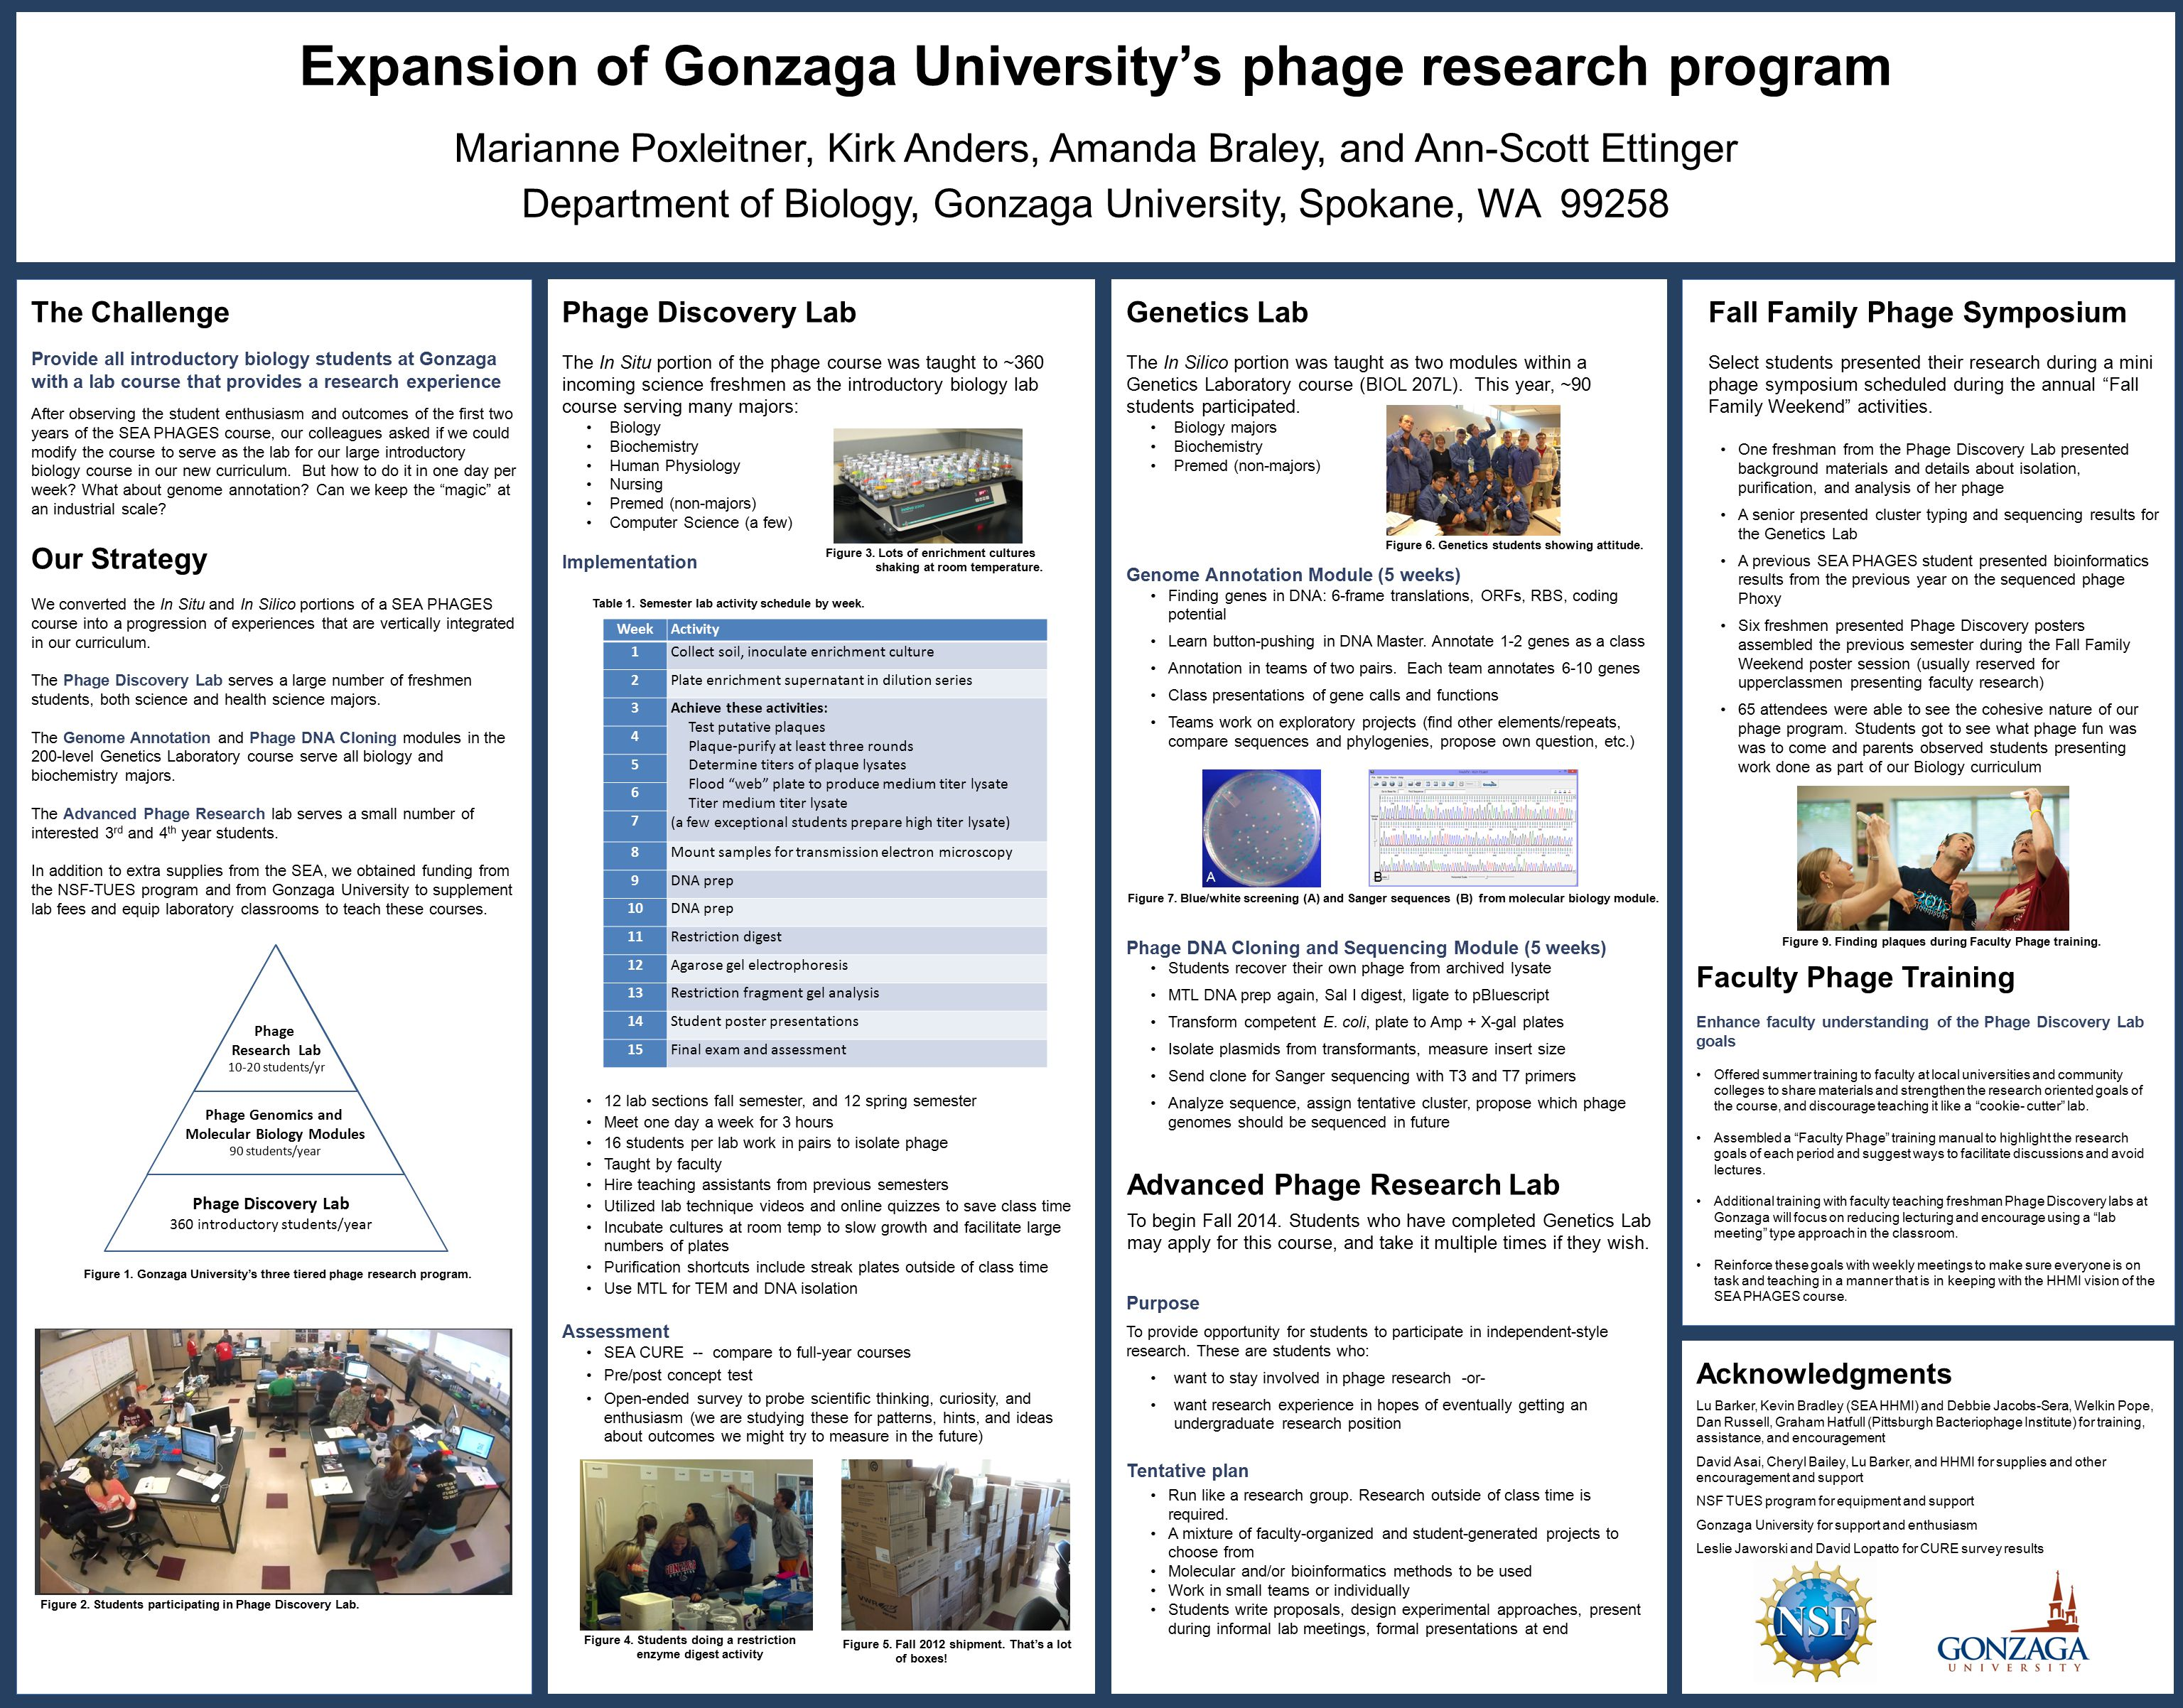 Expansion of Gonzaga University's phage research program Marianne Poxleitner, Kirk Anders, Amanda Braley, and Ann-Scott Ettinger Department of Biology, Gonzaga University, Spokane, WA 99258 The Challenge Provide all introductory biology students at Gonzaga with a lab course that provides a research experience After observing the student enthusiasm and outcomes of the first two years of the SEA PHAGES course, our colleagues asked if we could modify the course to serve as the lab for our large introductory biology course in our new curriculum.